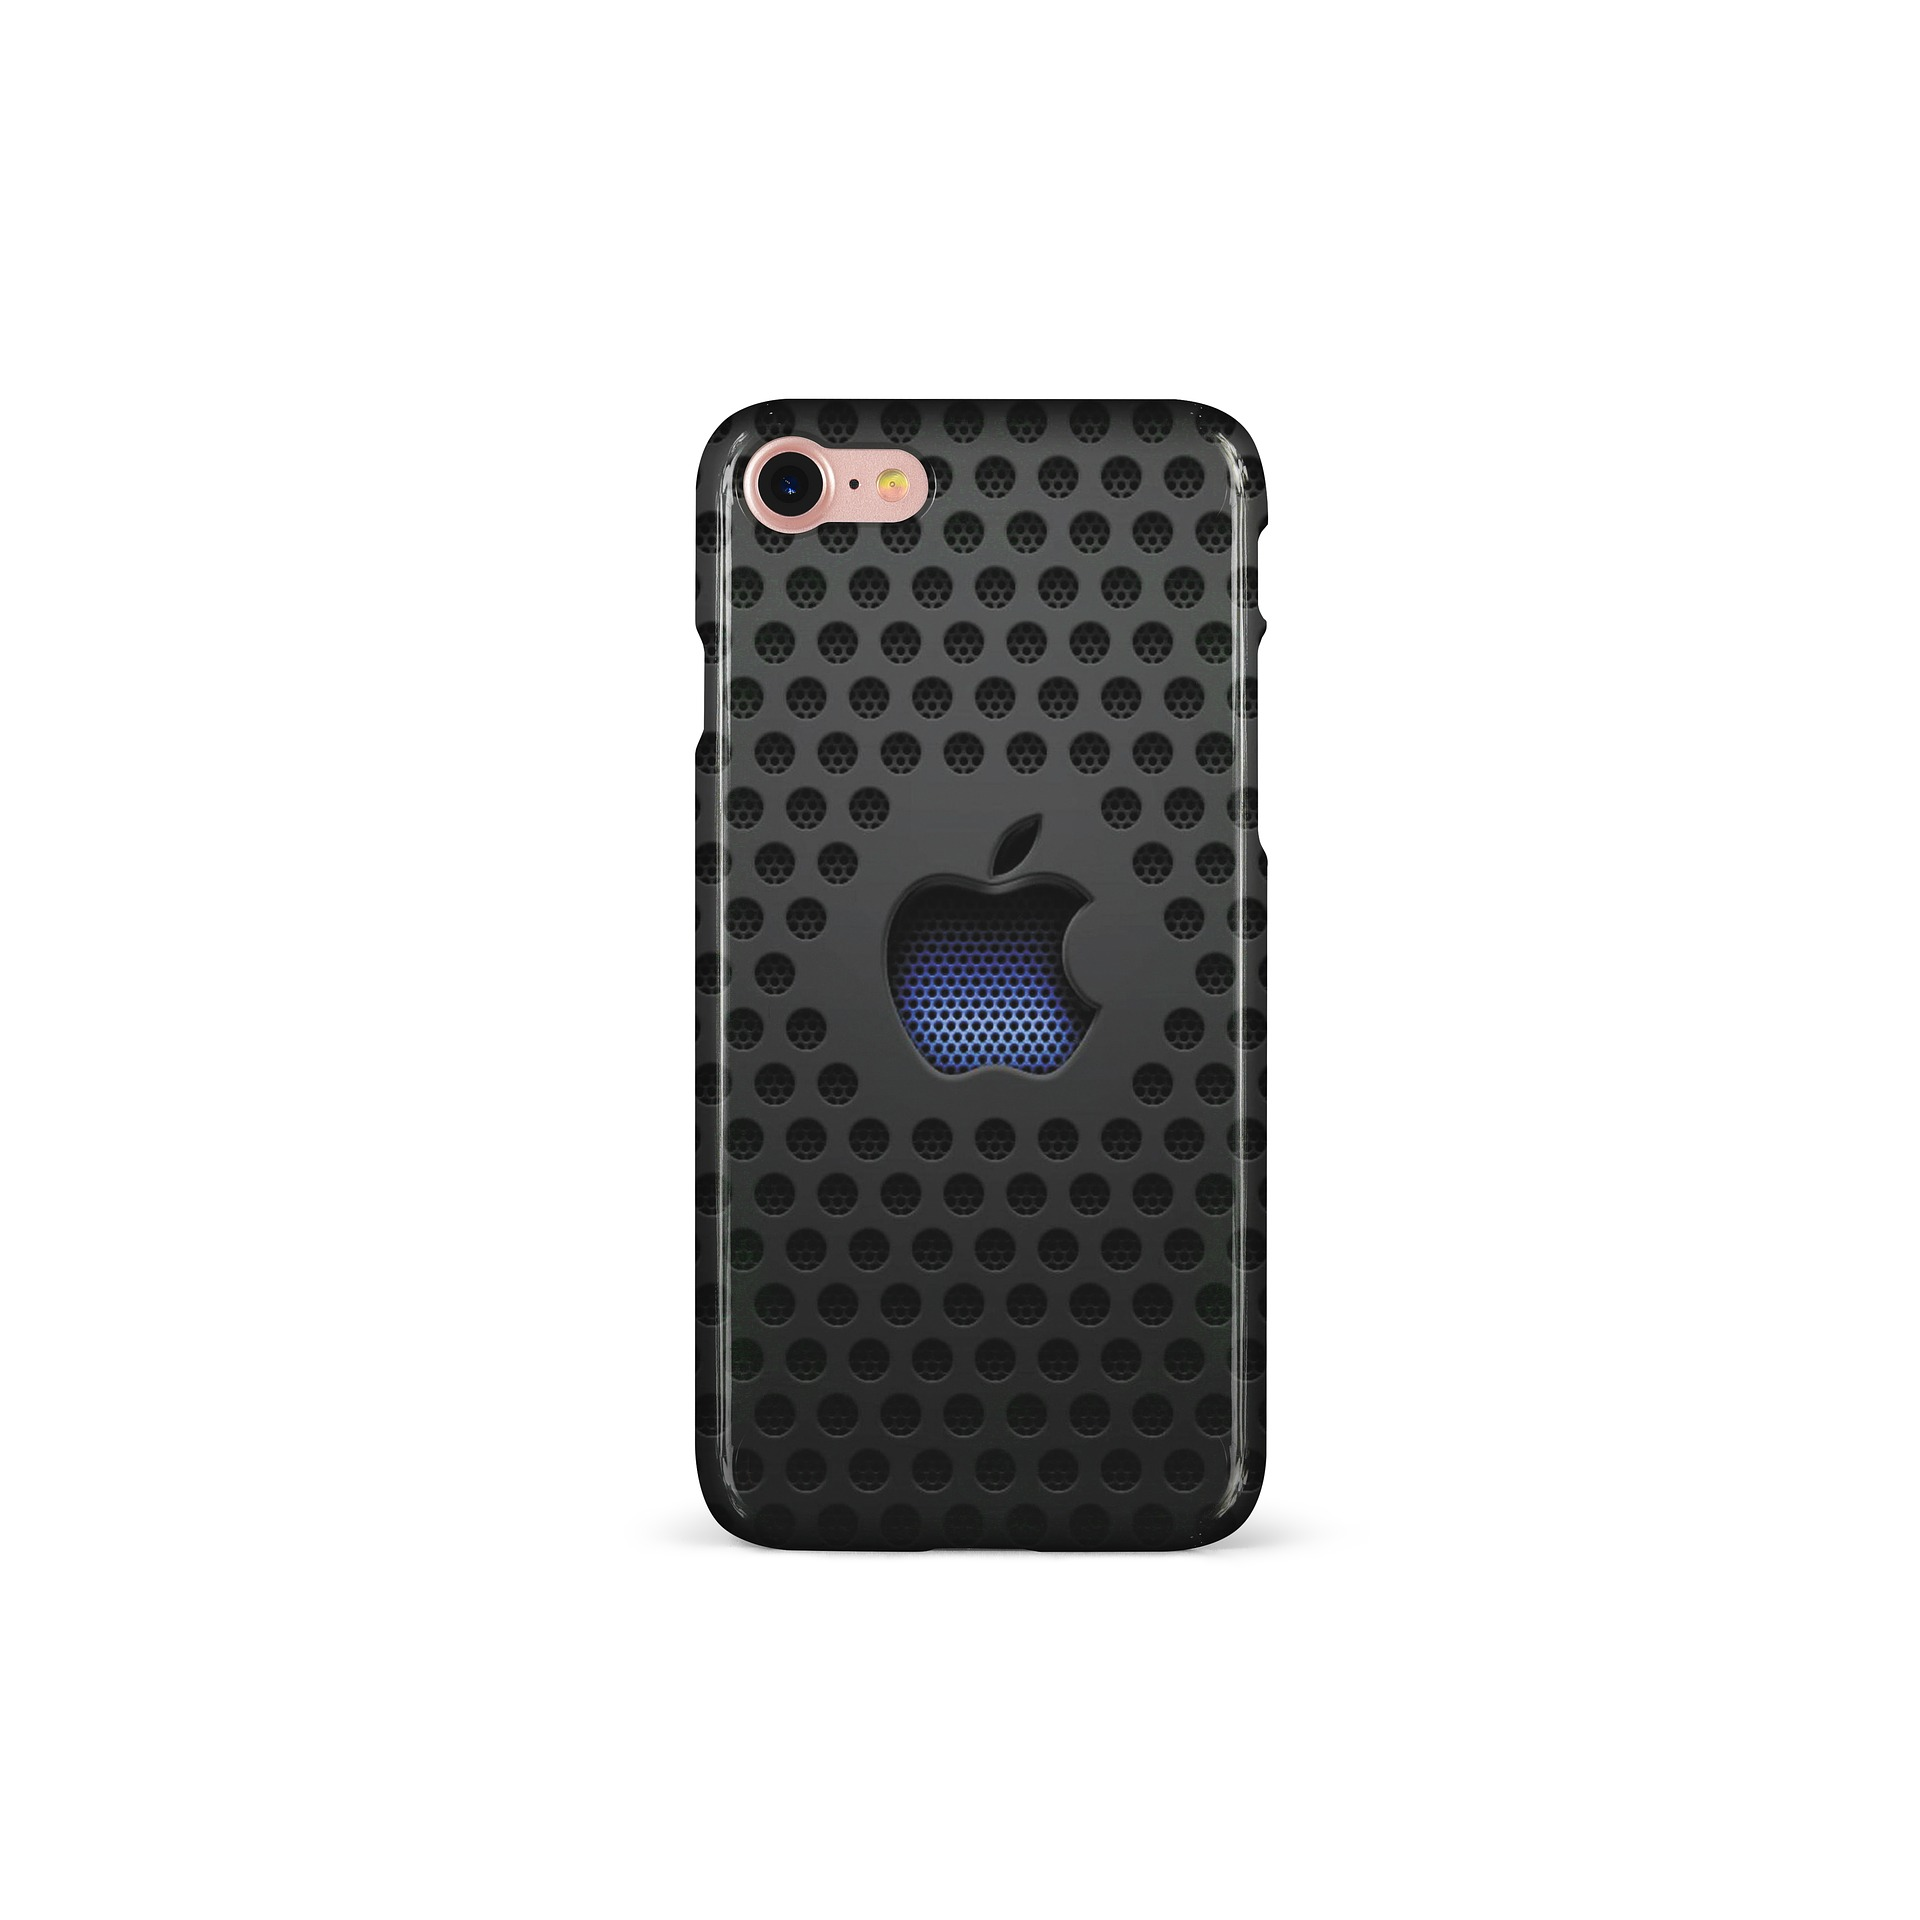 Get The Best Cases With IPhone Case Supplier